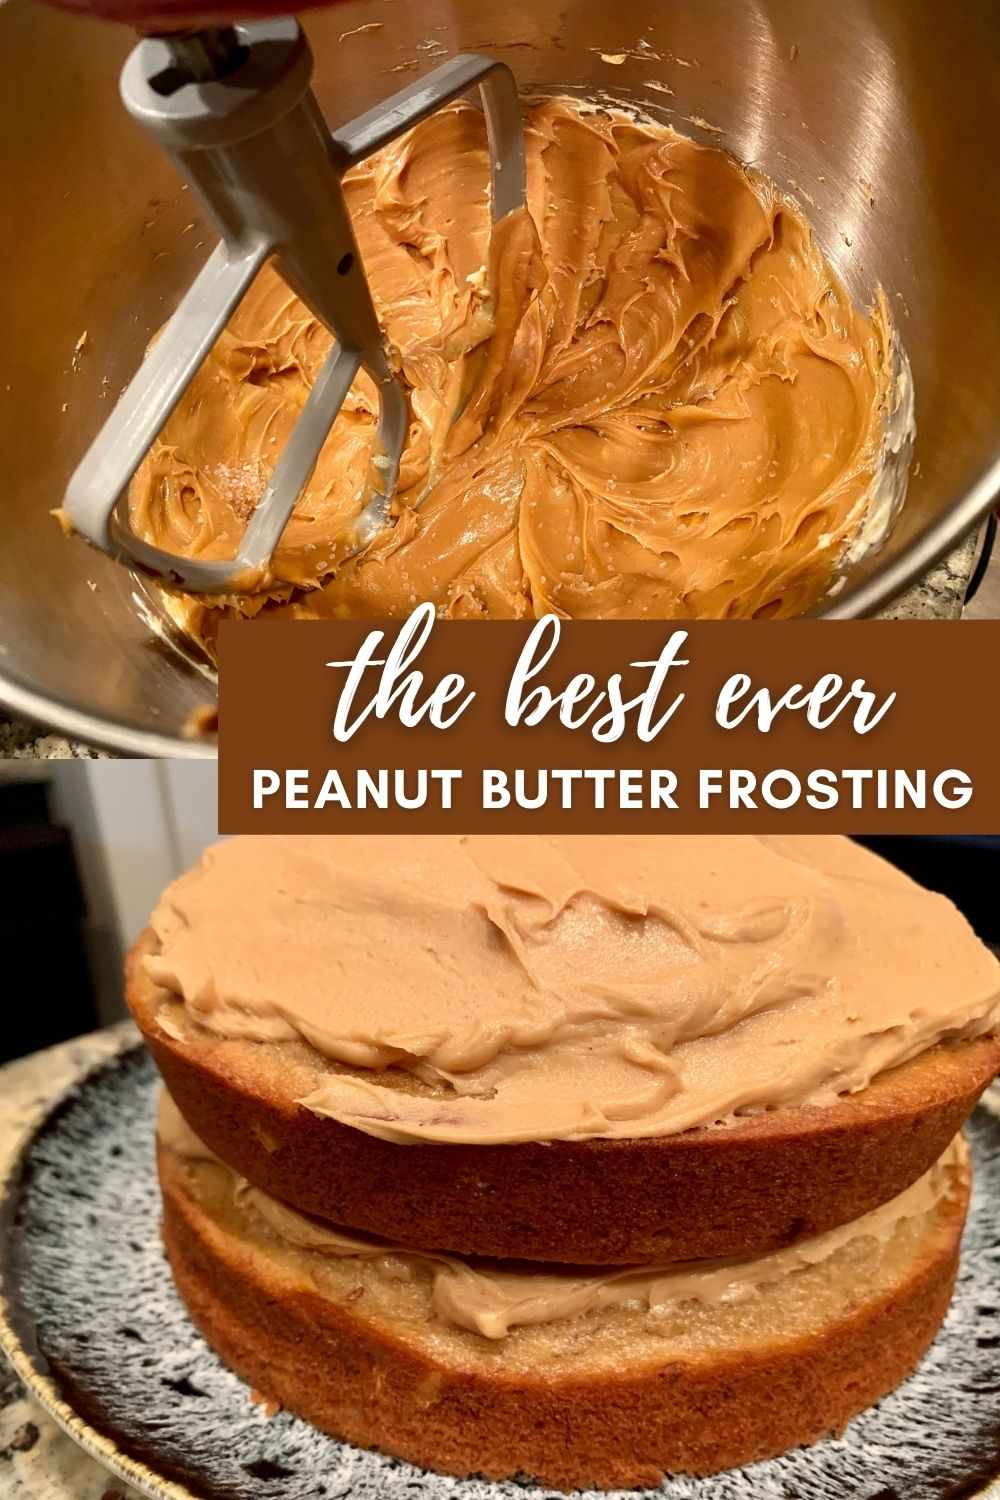 The Best Peanut Butter Frosting Ever | This super peanut butter-y icing is delicious and packed with flavor, super easy to make and great on tons of different cakes. If you're looking for a peanut icing recipe, this is the one. #peanutbutter #frosting #cakeicing